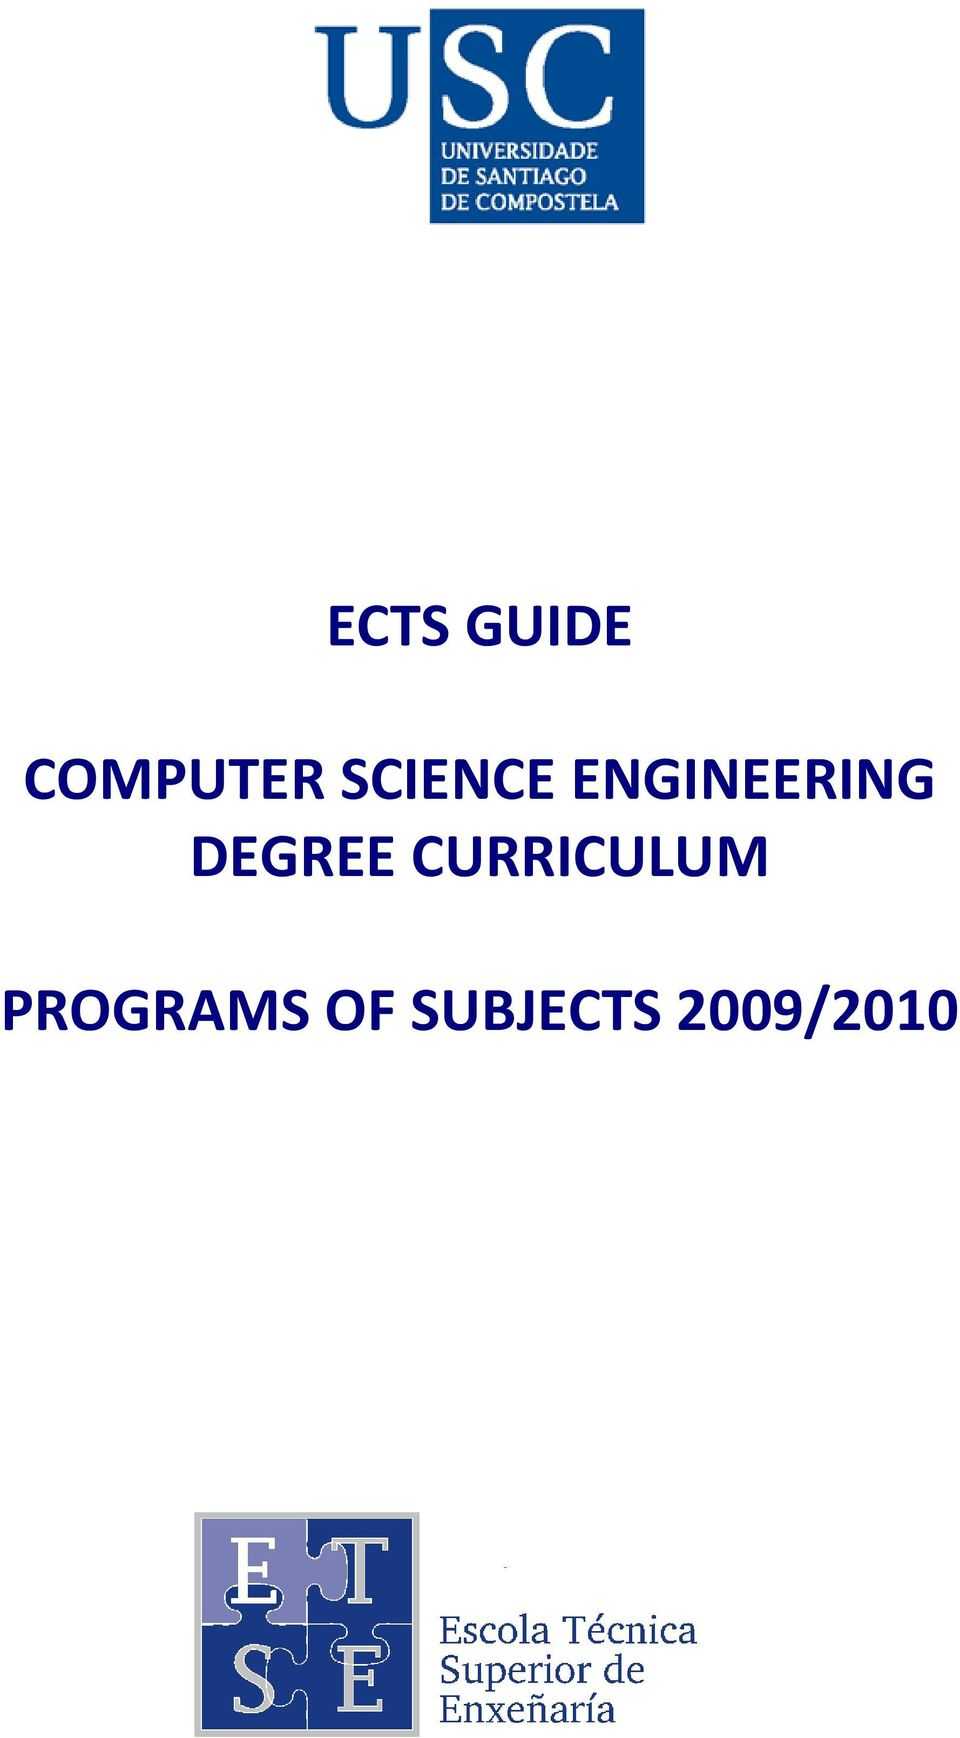 DEGREE CURRICULUM